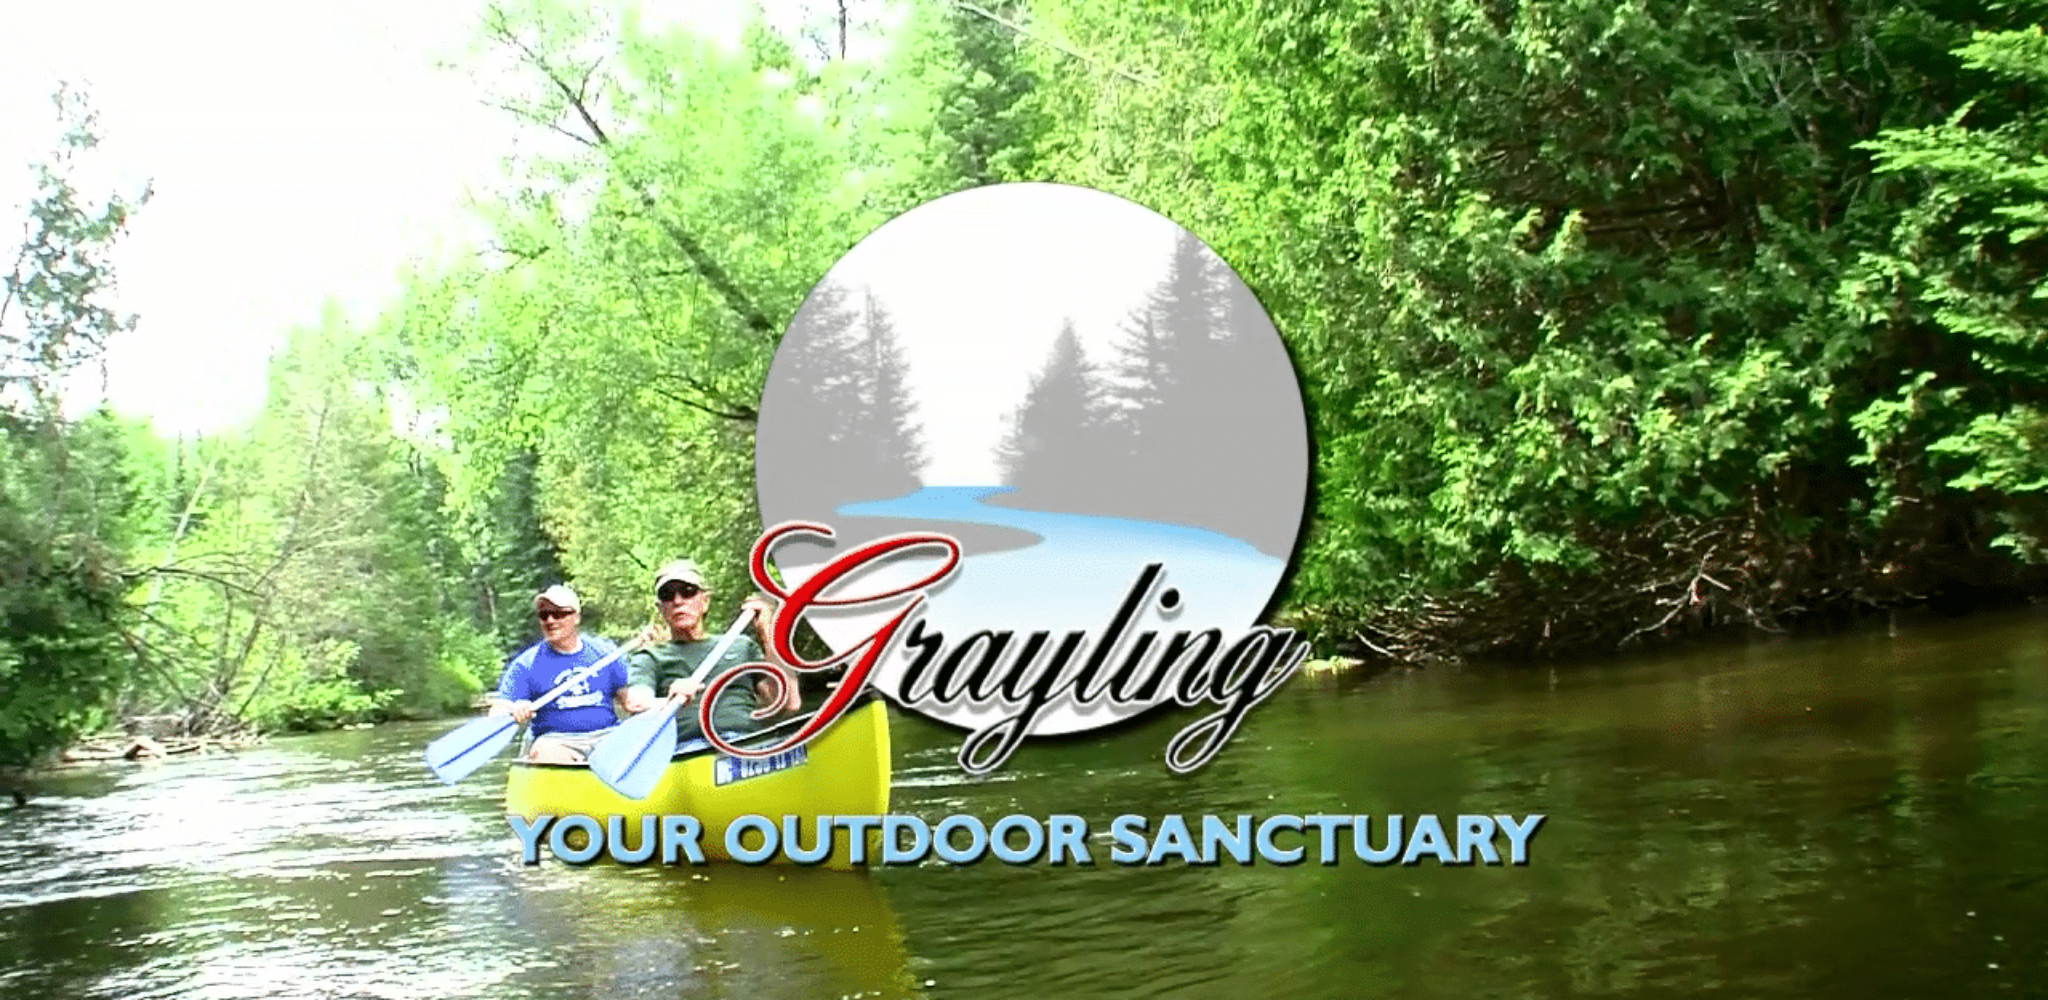 Grayling, Michgan - Your Outdoor Sanctuary